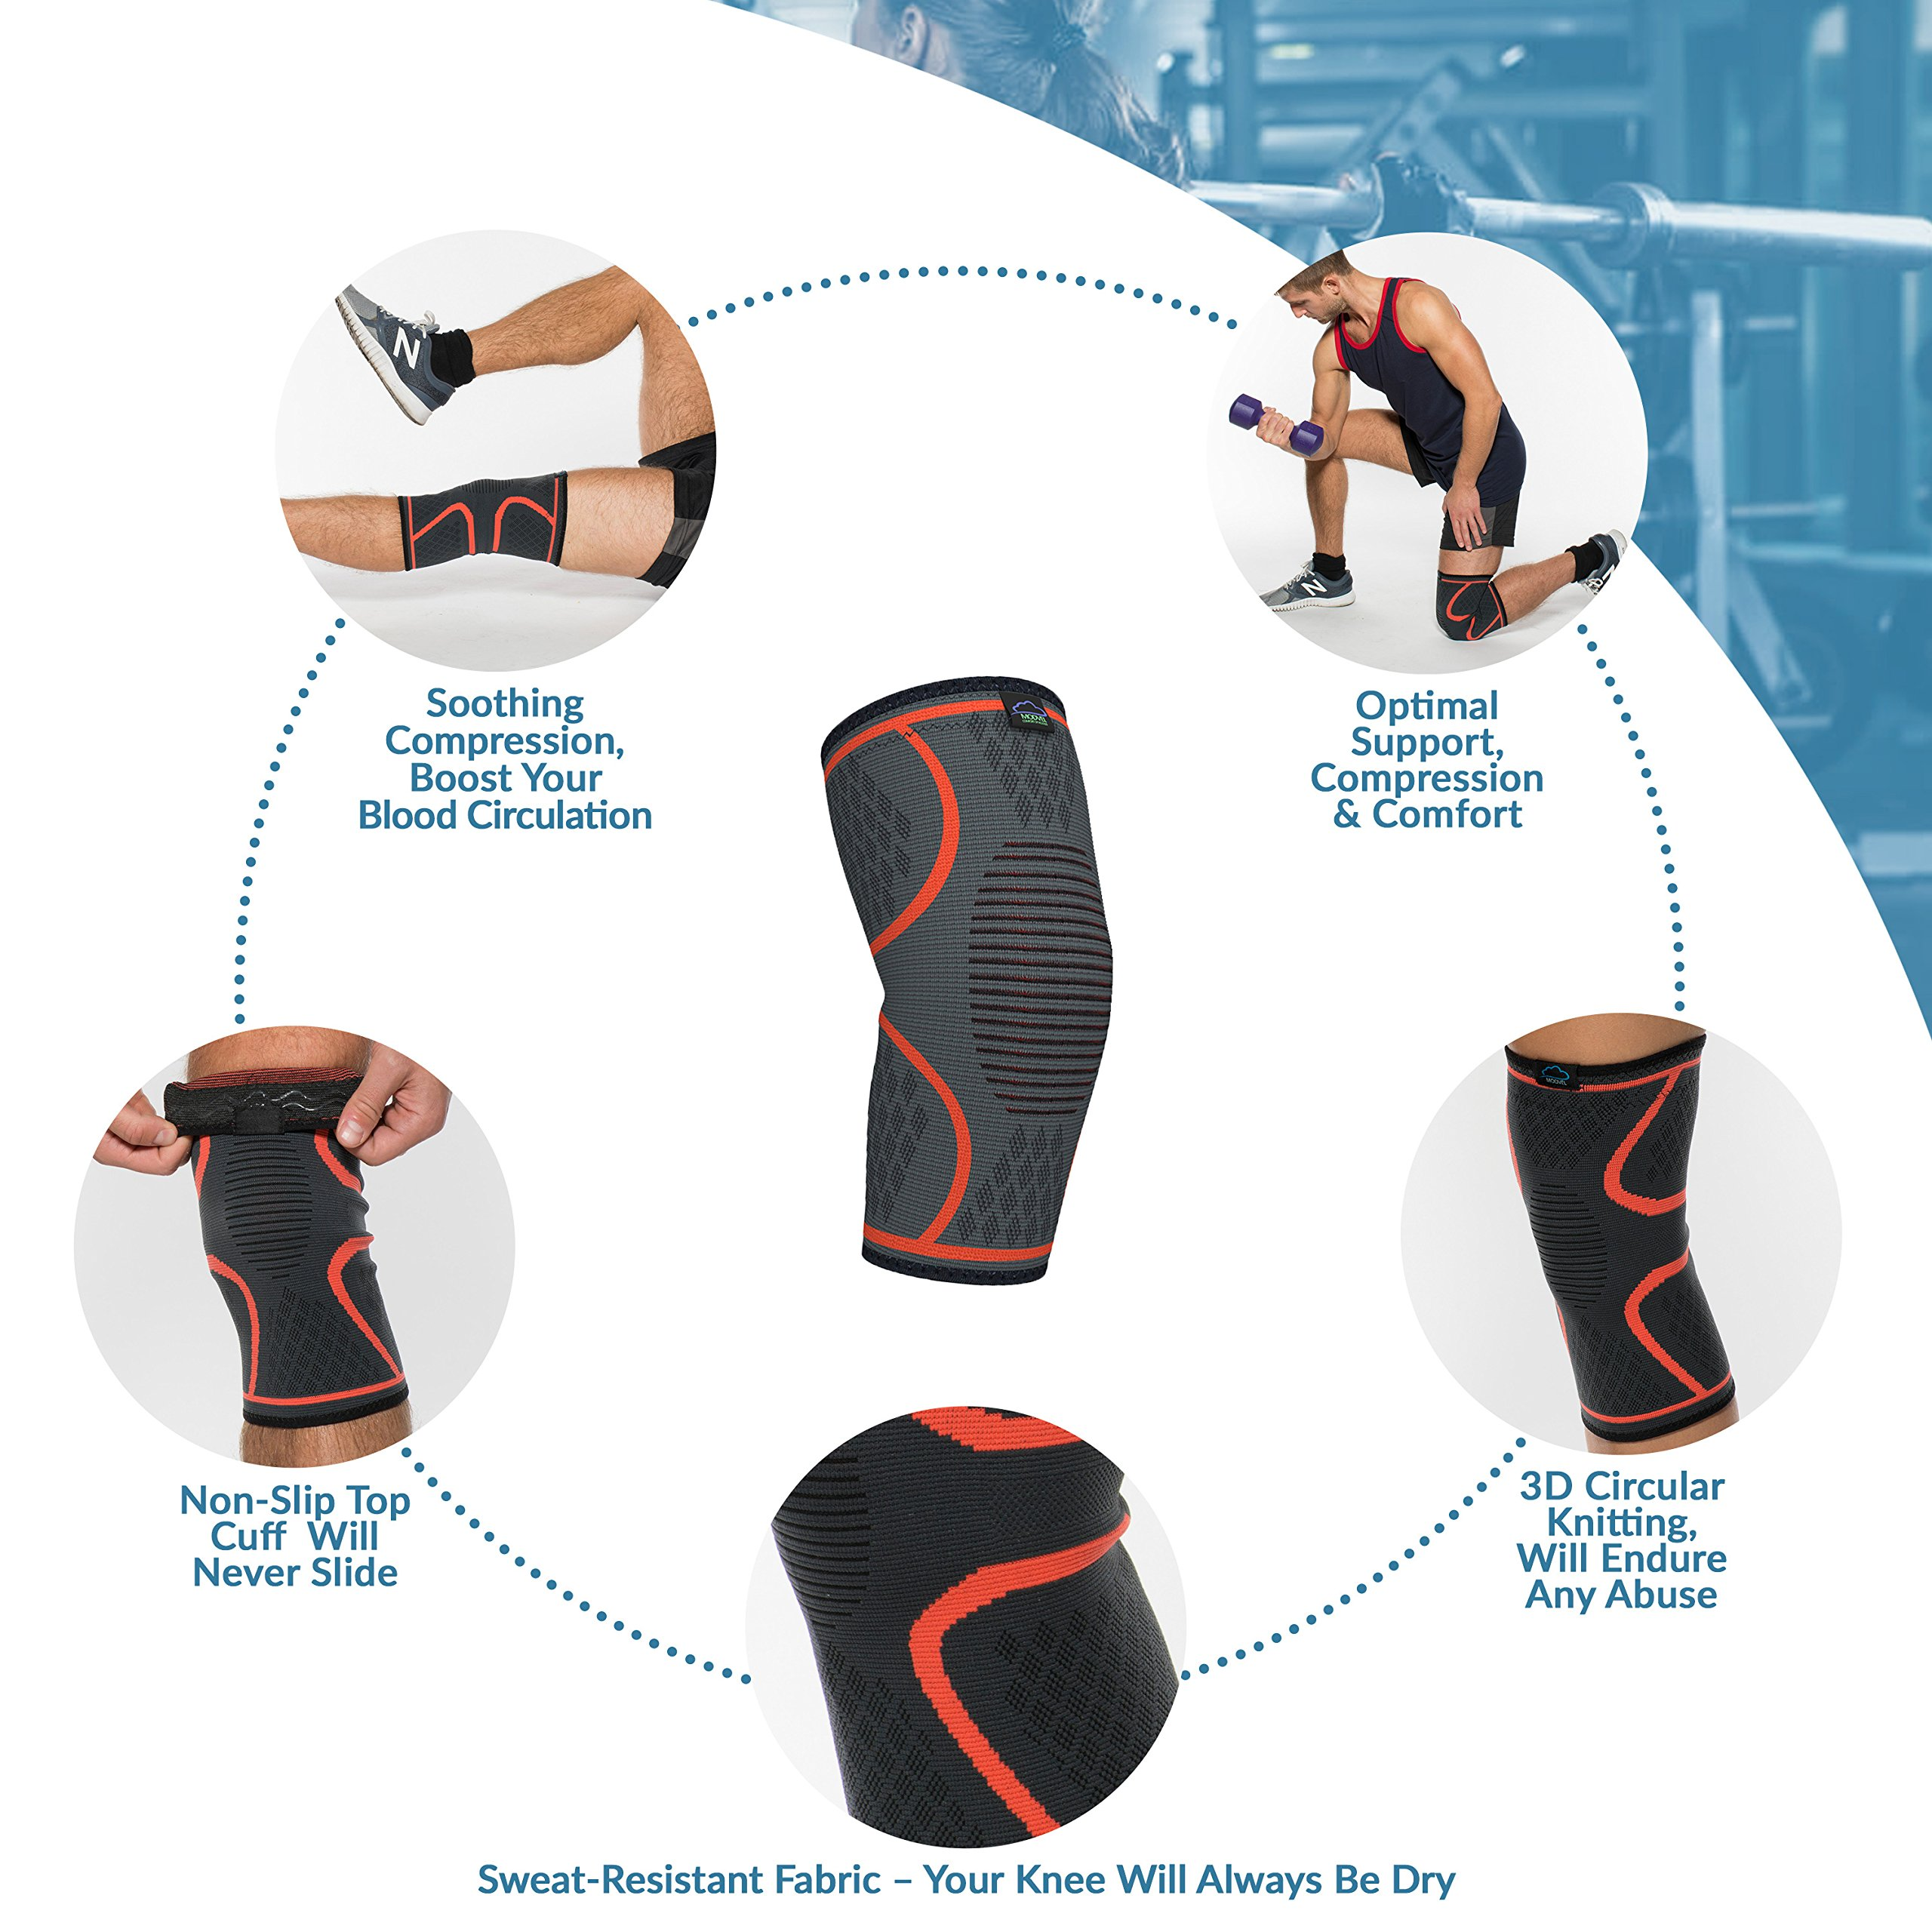 Modvel Compression Knee Sleeve (1 Pair) - Ultra Flexible, Comfortable Knee Brace for Men and Women, Great for All Athletics, Volleyball, ACL, Stabilizer for Arthritis and Knee Pain Relief, M (MV-111) by Modvel (Image #3)